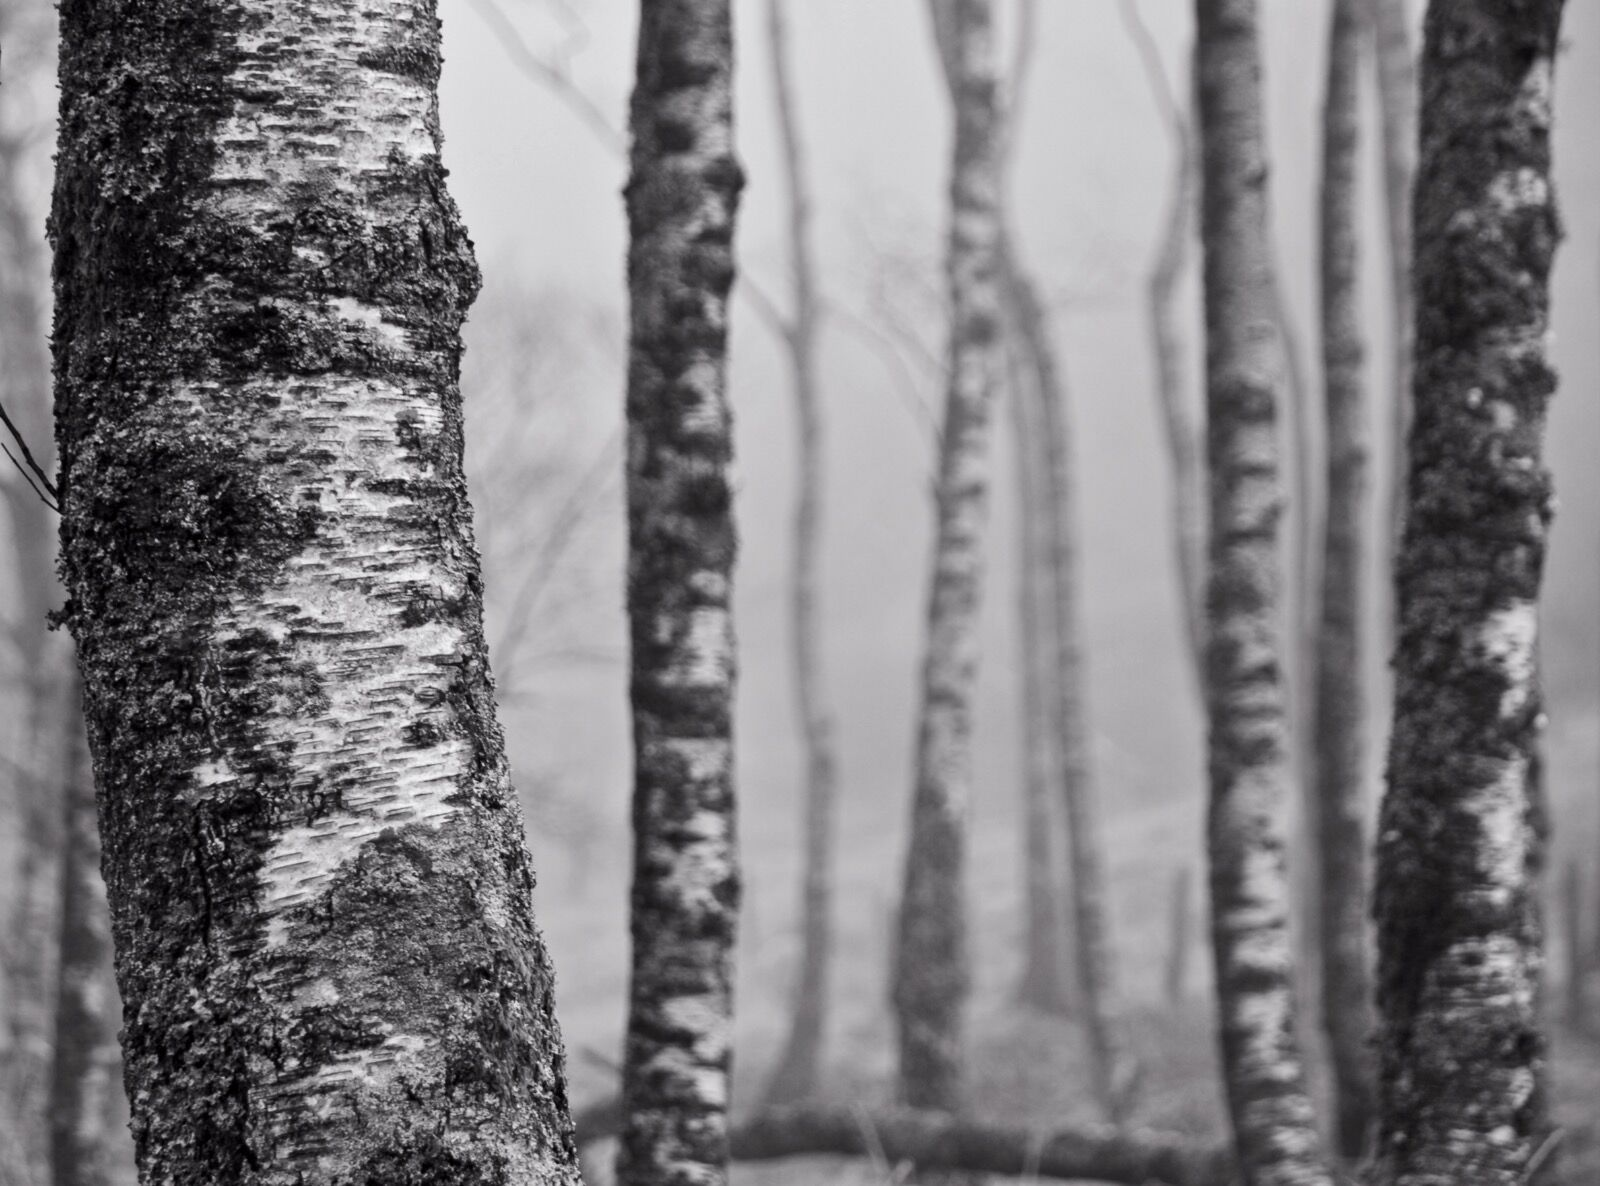 Silver Birches in Borrowdale